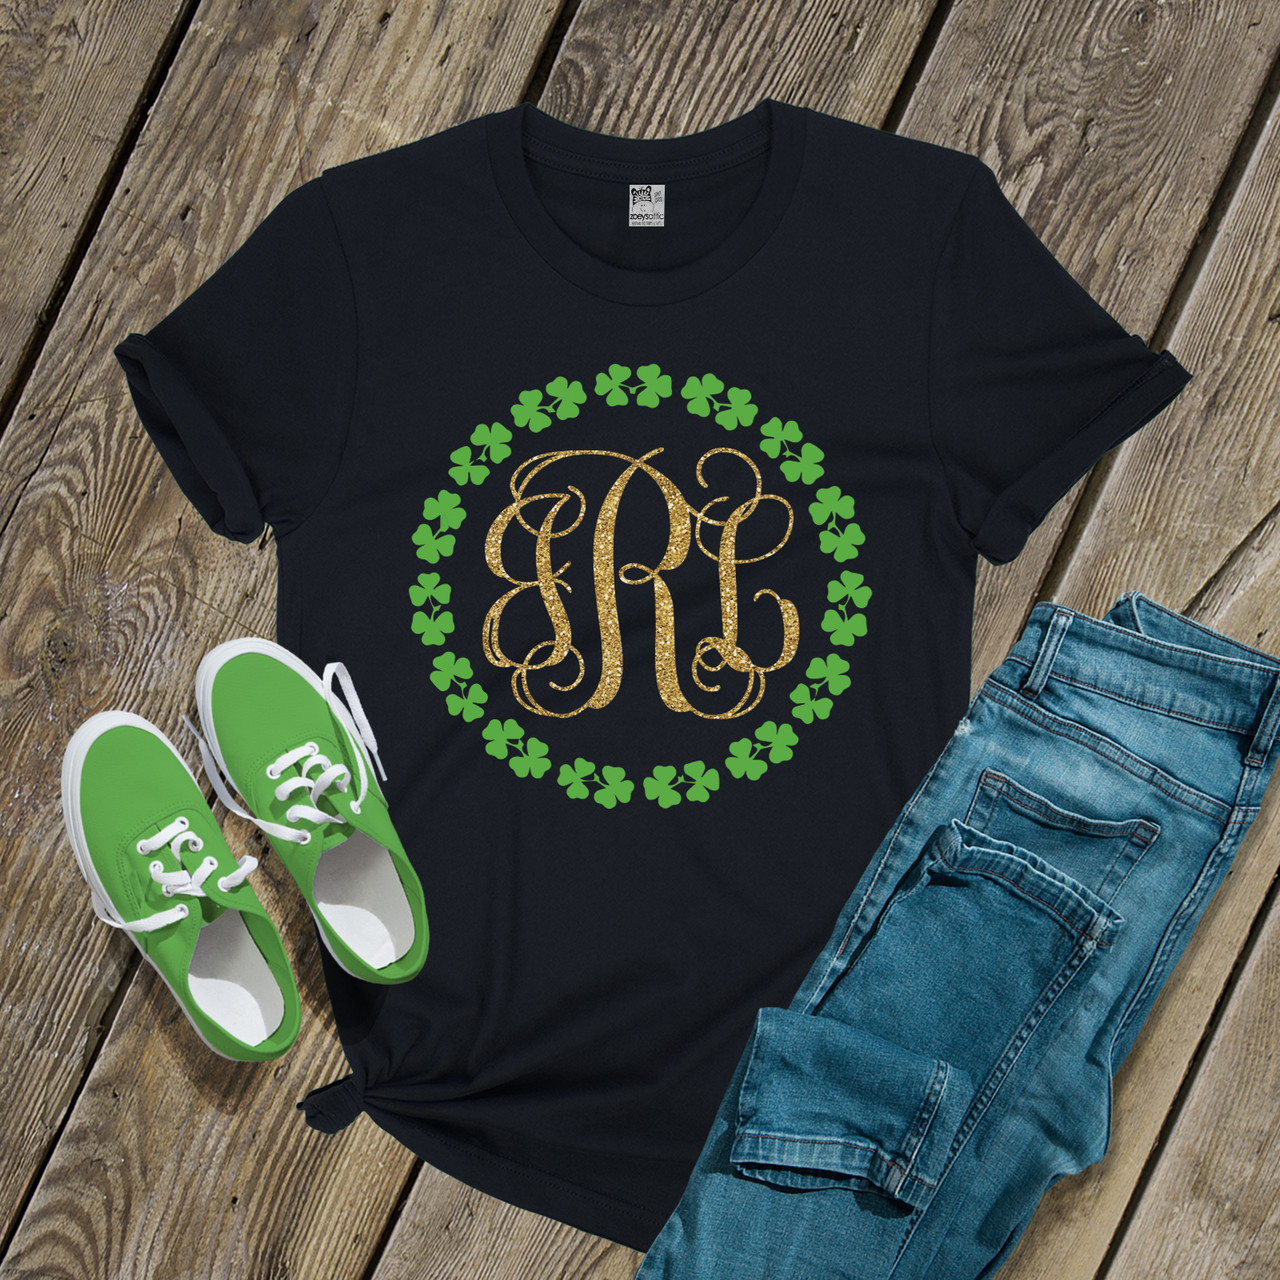 5ce3c7ba st patricks day shirt, dark tshirt with glitter monogram and shamrock wreath